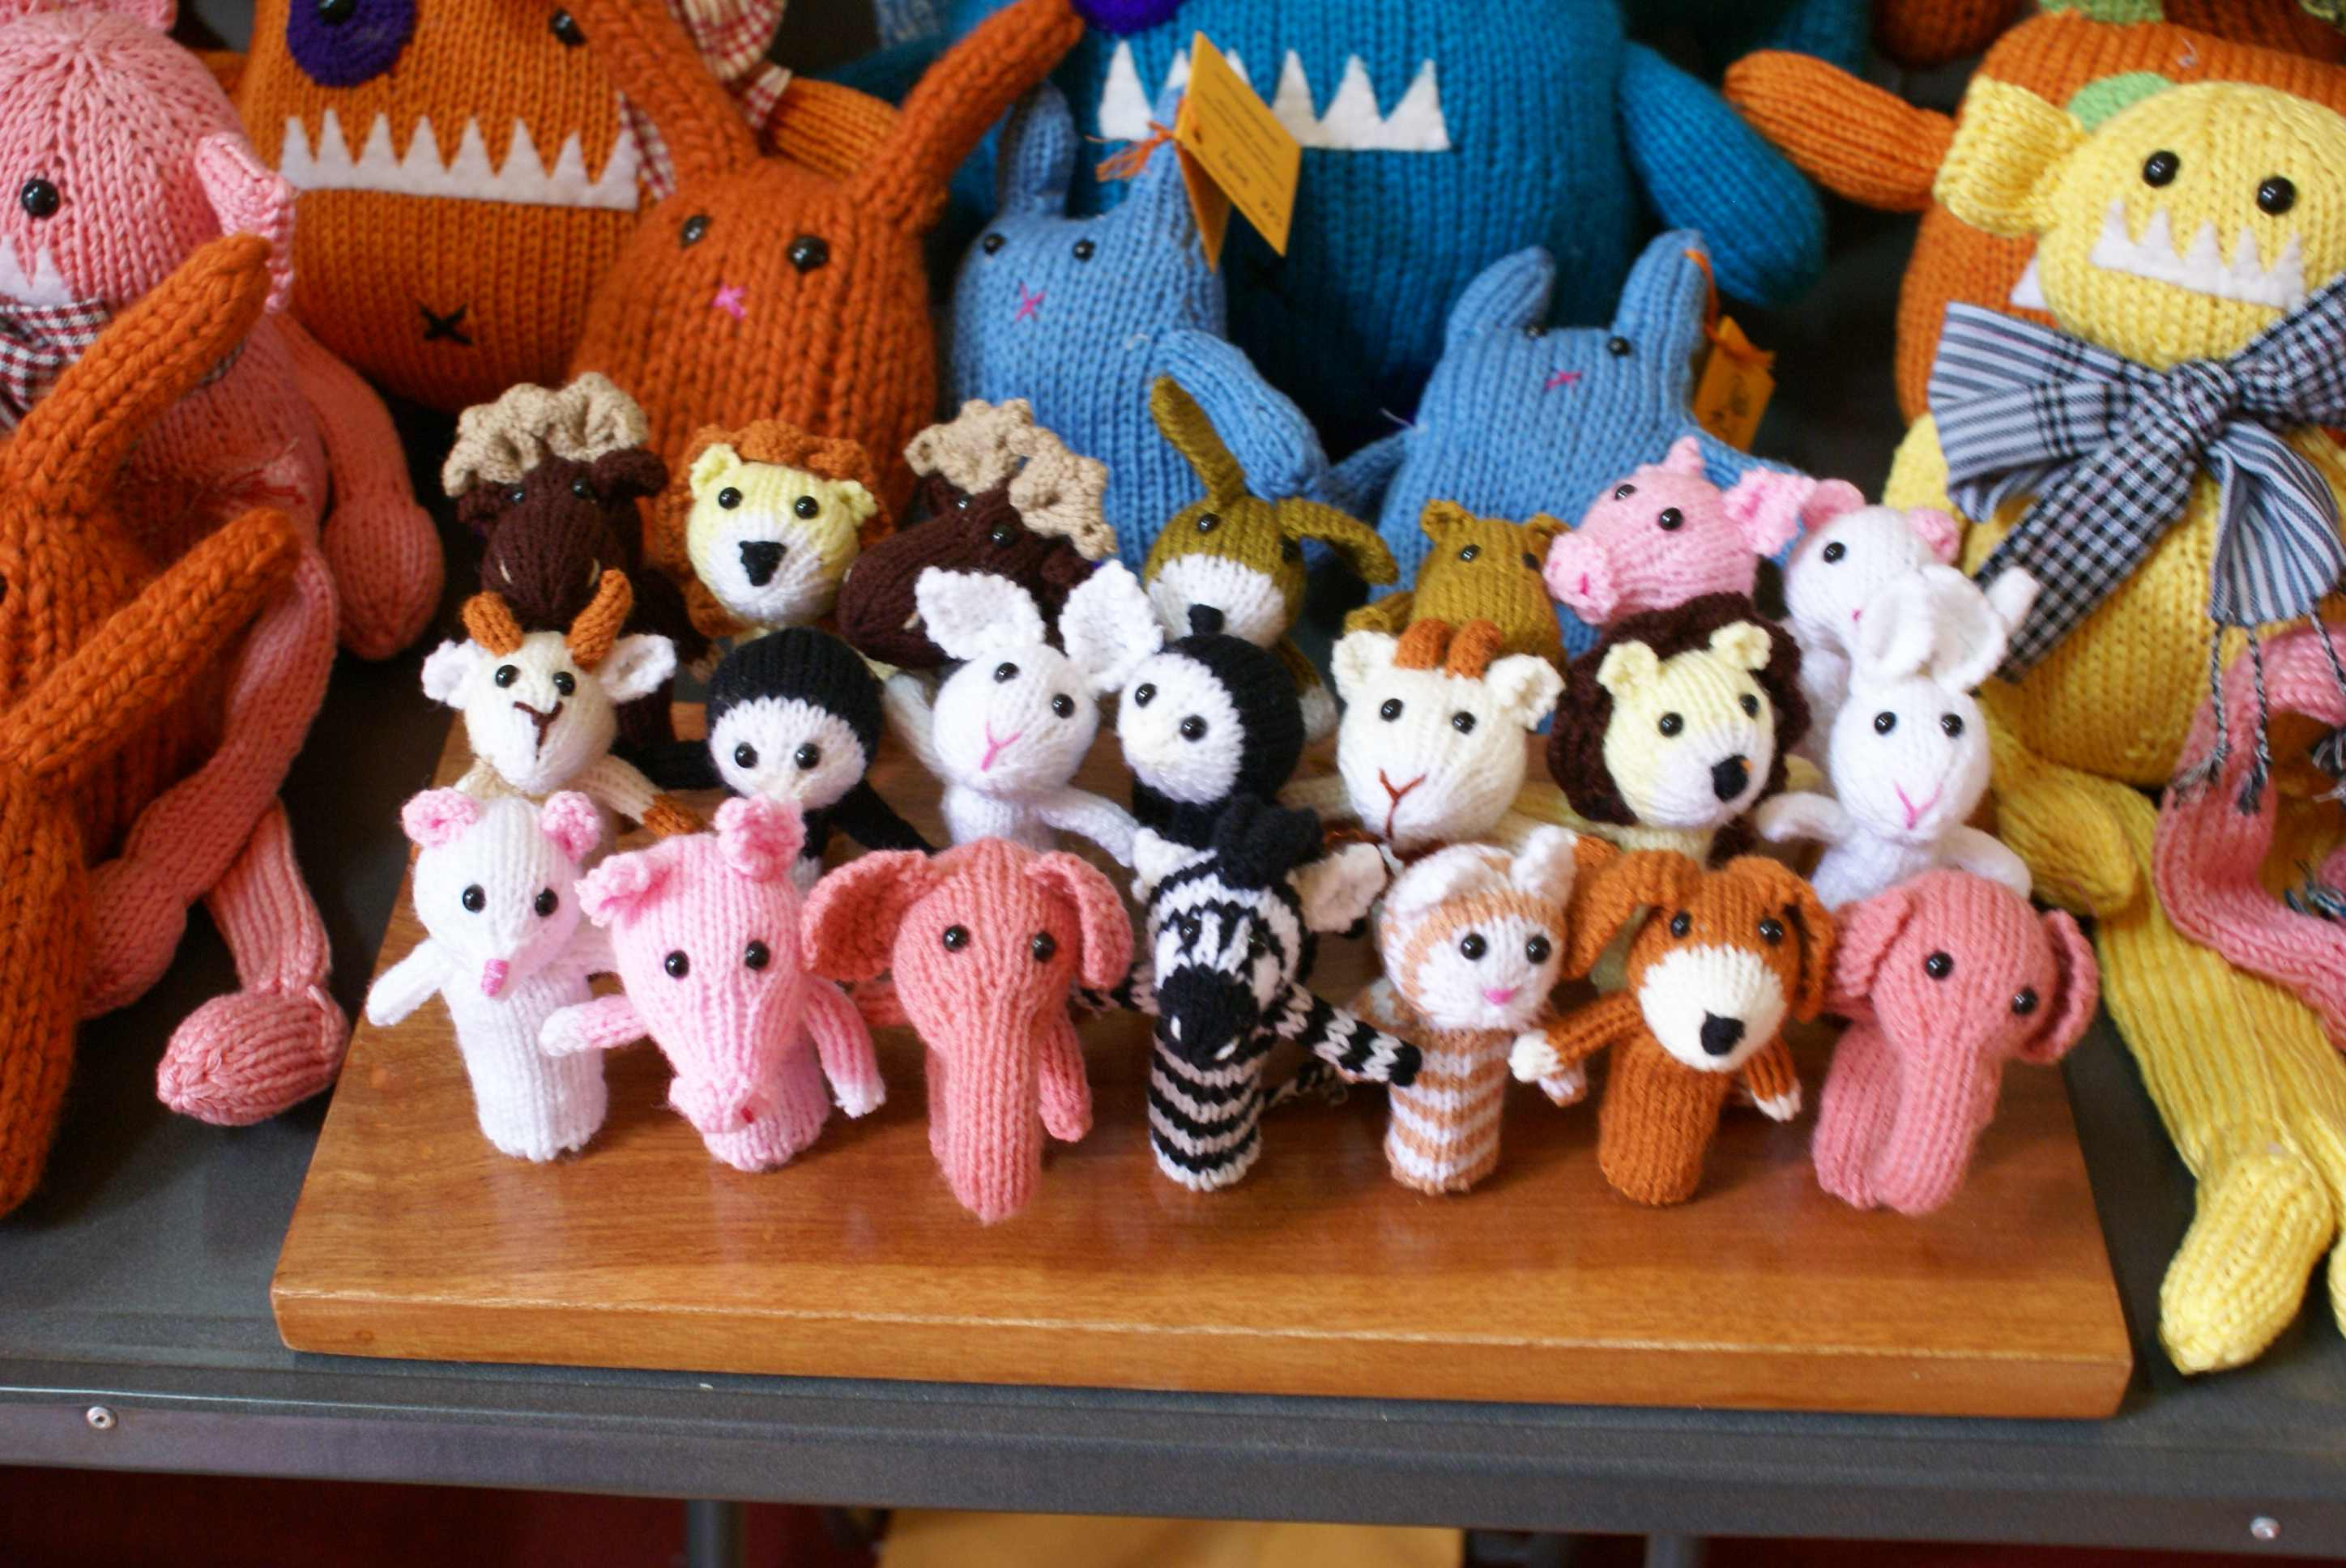 Lujoso Knitted Finger Puppets Patterns Free Composición - Manta de ...